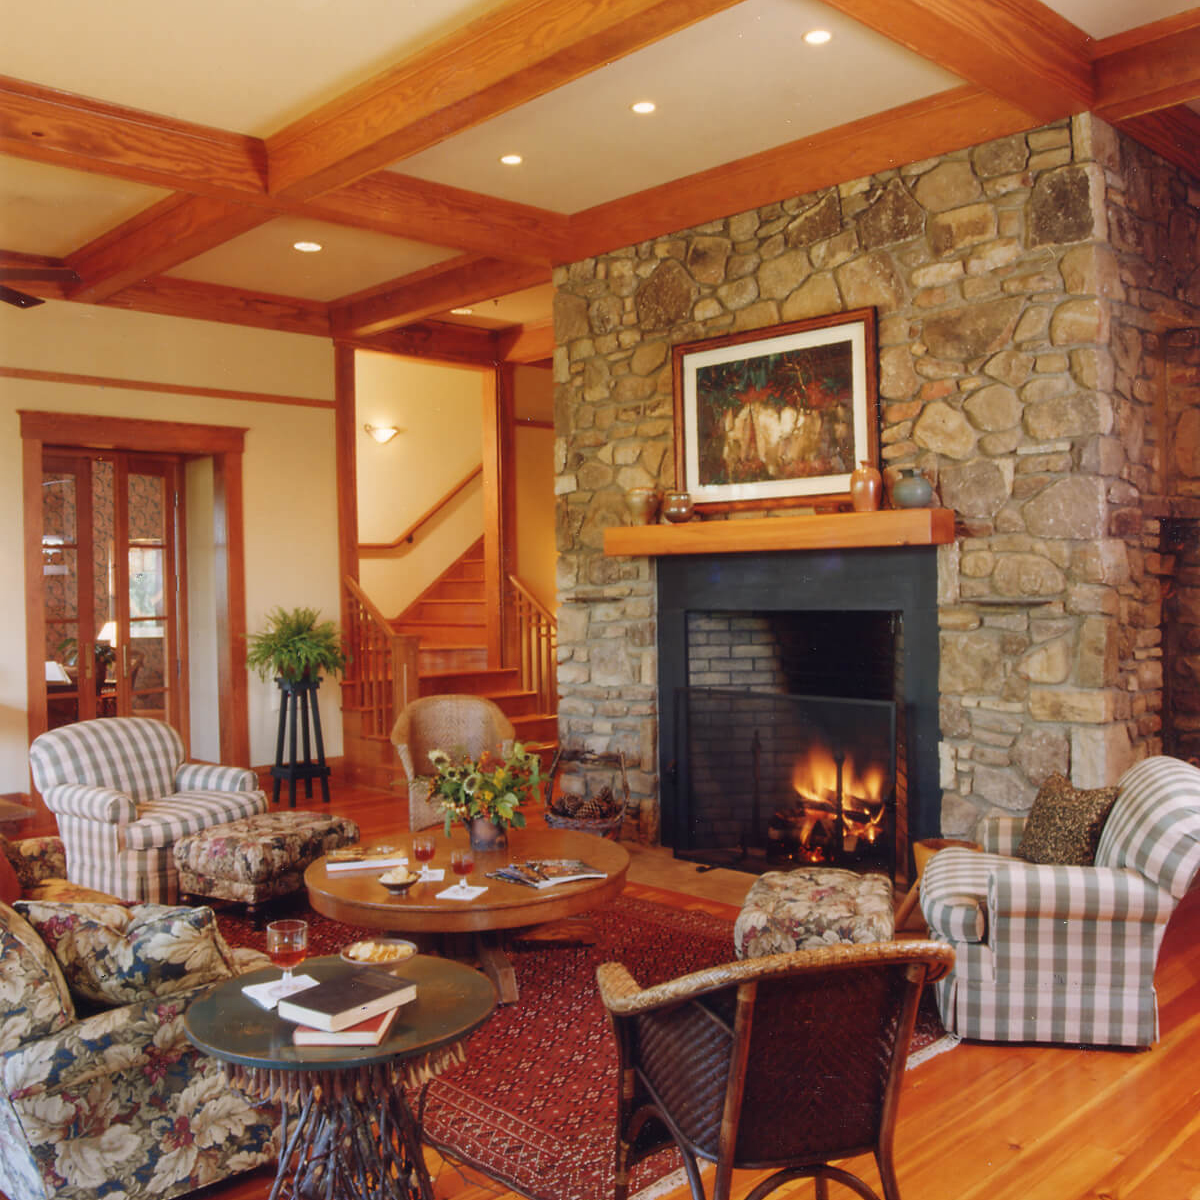 The Sourwood Inn hotel renovation project in WNC